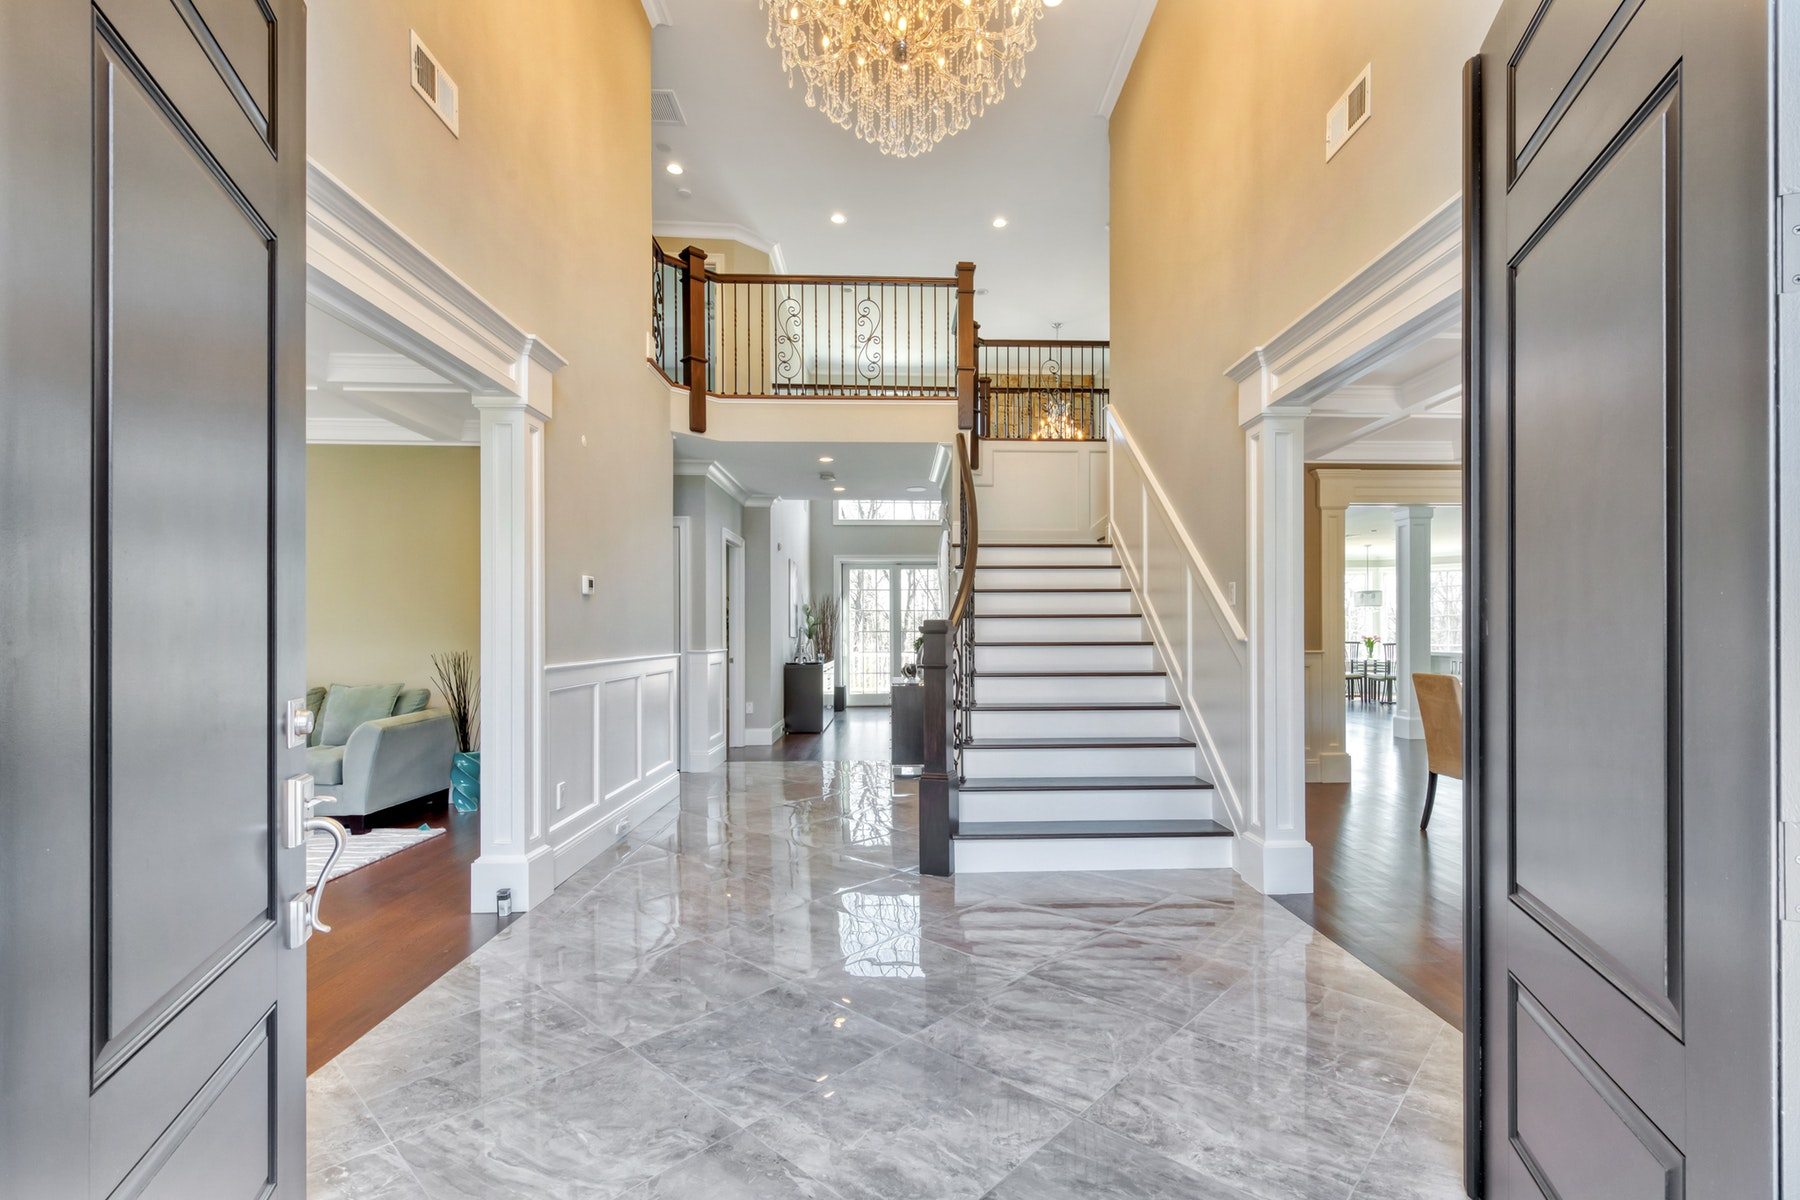 Single Family Homes for Sale at SMART HOUSE ! 72 Skyline Dr Upper Saddle River, New Jersey 07458 United States